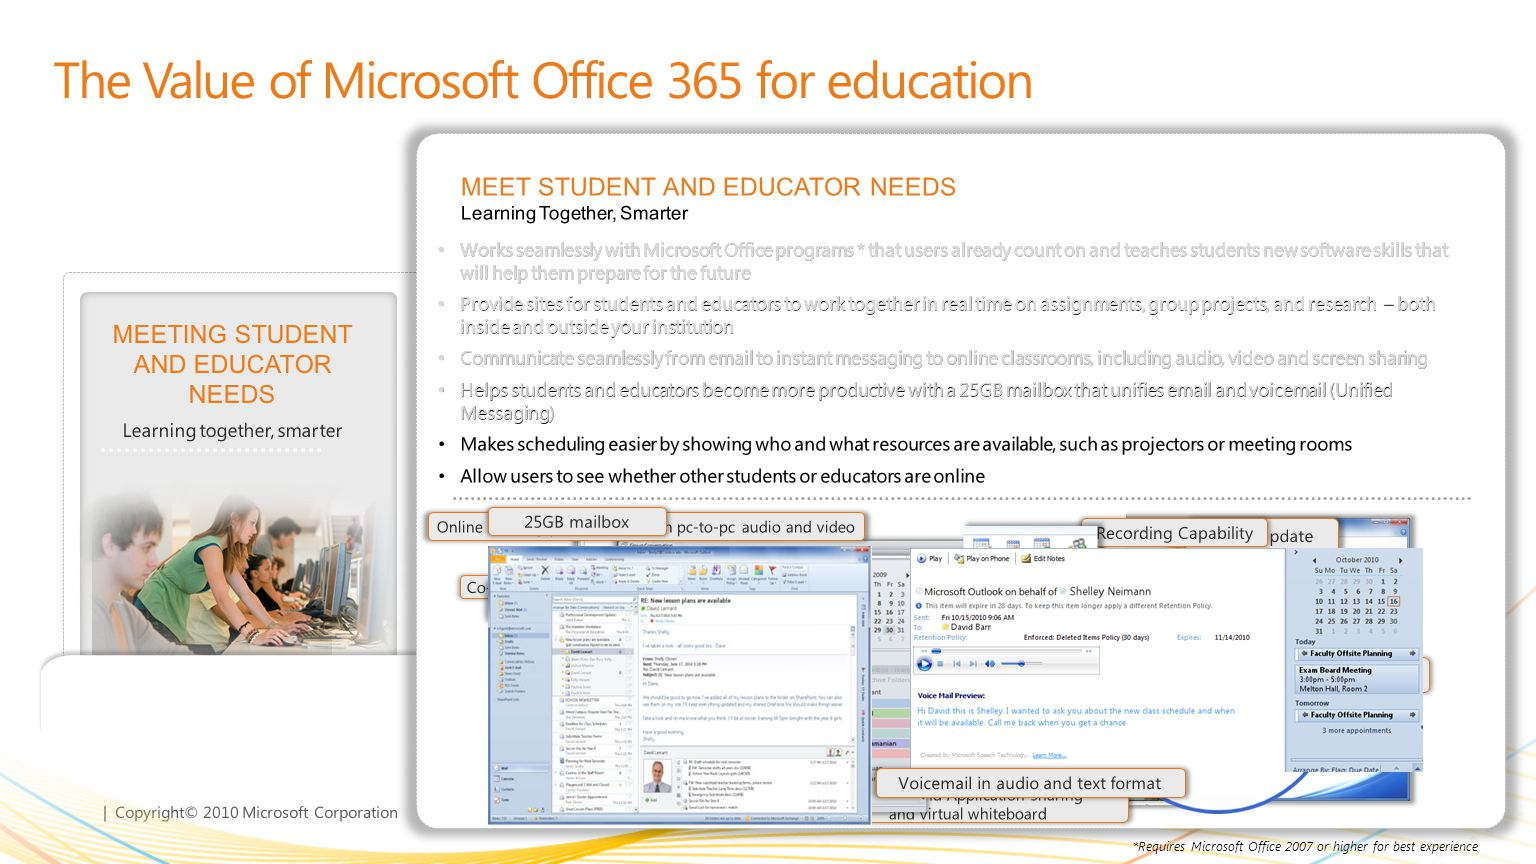 | Copyright© 2010 Microsoft Corporation GETTING MORE FOR LESS Deliver more IT functionality at reduced cost MEETING STUDENT AND EDUCATOR NEEDS Learning together, smarter LEARNING FROM ANYWHERE * Solve problems from more places ENTERPRISE CLASS SECURITY, RELIABILITY, AND PRIVACY Keeps you in control The Value of Microsoft Office 365 for education Provide users anywhere-access to their email, assignments and calendar on nearly any device* Consistent experience across PC, phone and browser for Outlook, Word, PowerPoint, Excel, OneNote Broad range of devices : including PC, Mac, Windows Phone, iPhone, iPad, Android and BlackBerry** View and edit assignments with Office Web Apps with Internet Explorer, Firefox, Safari, or Chrome Connect securely* over Internet with HTTPS without the need for VPN LEARNING FROM ANYWHERE Solve problems with others from more places Web applications with cross-browser support Outlook Web App Seamless mobile access across many devices Access to PowerPoint Access to SharePoint Office Hub in Windows Phone 7 Access to Calendar Access to shared documents